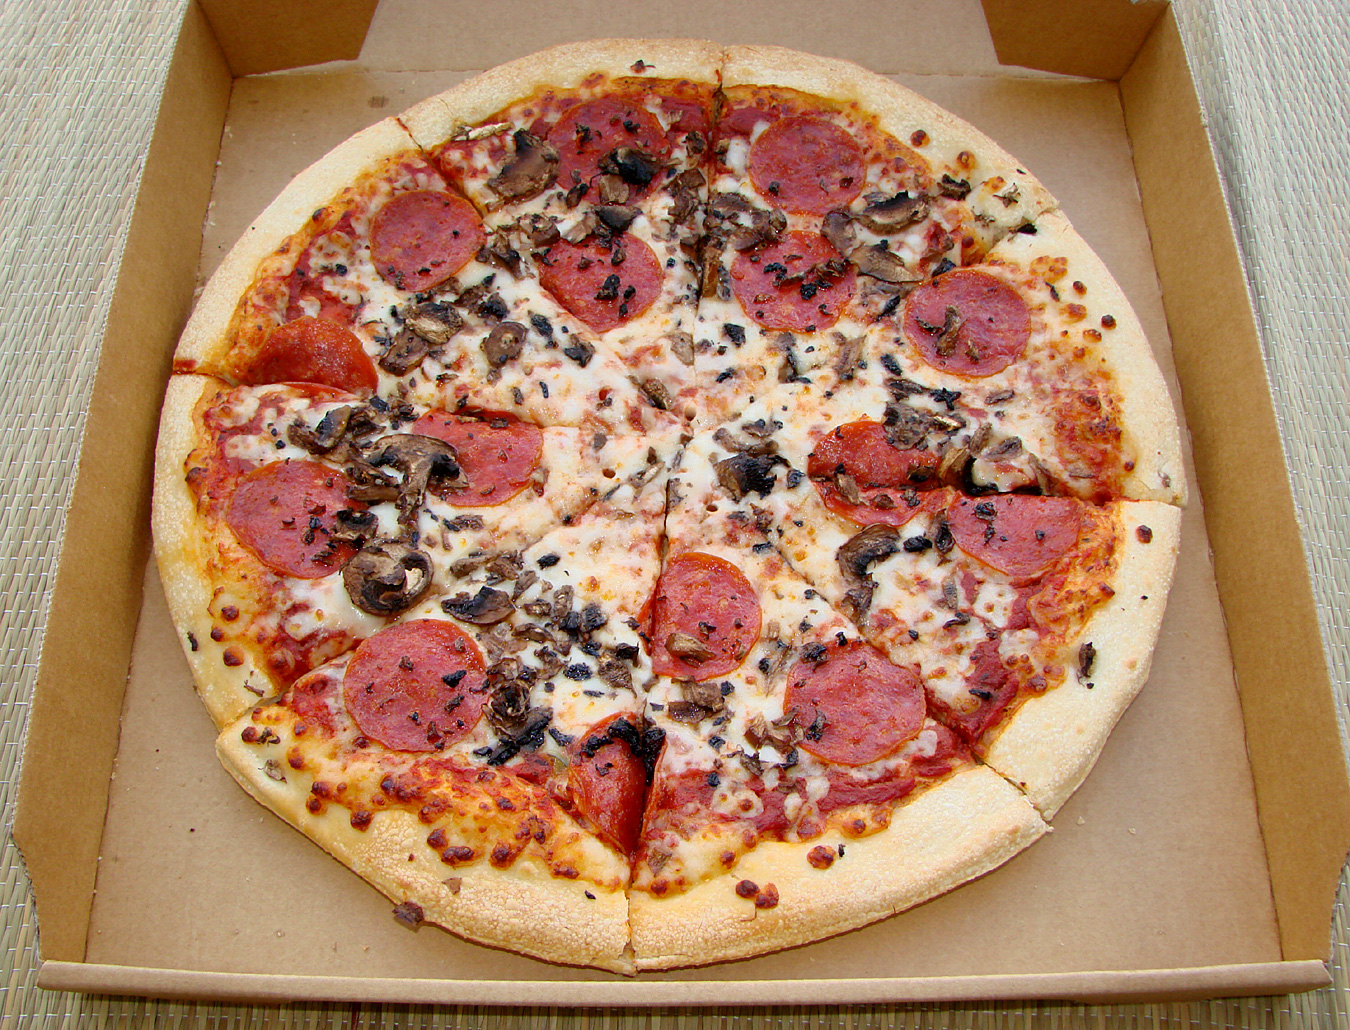 A large pizza is 14 inches in diameter, or about square inches A PANalicious (rectangular) pizza is x 12 inches, or about square inches A PANormous pizza is two PANalicious pizzas, with a total area of about square inches.